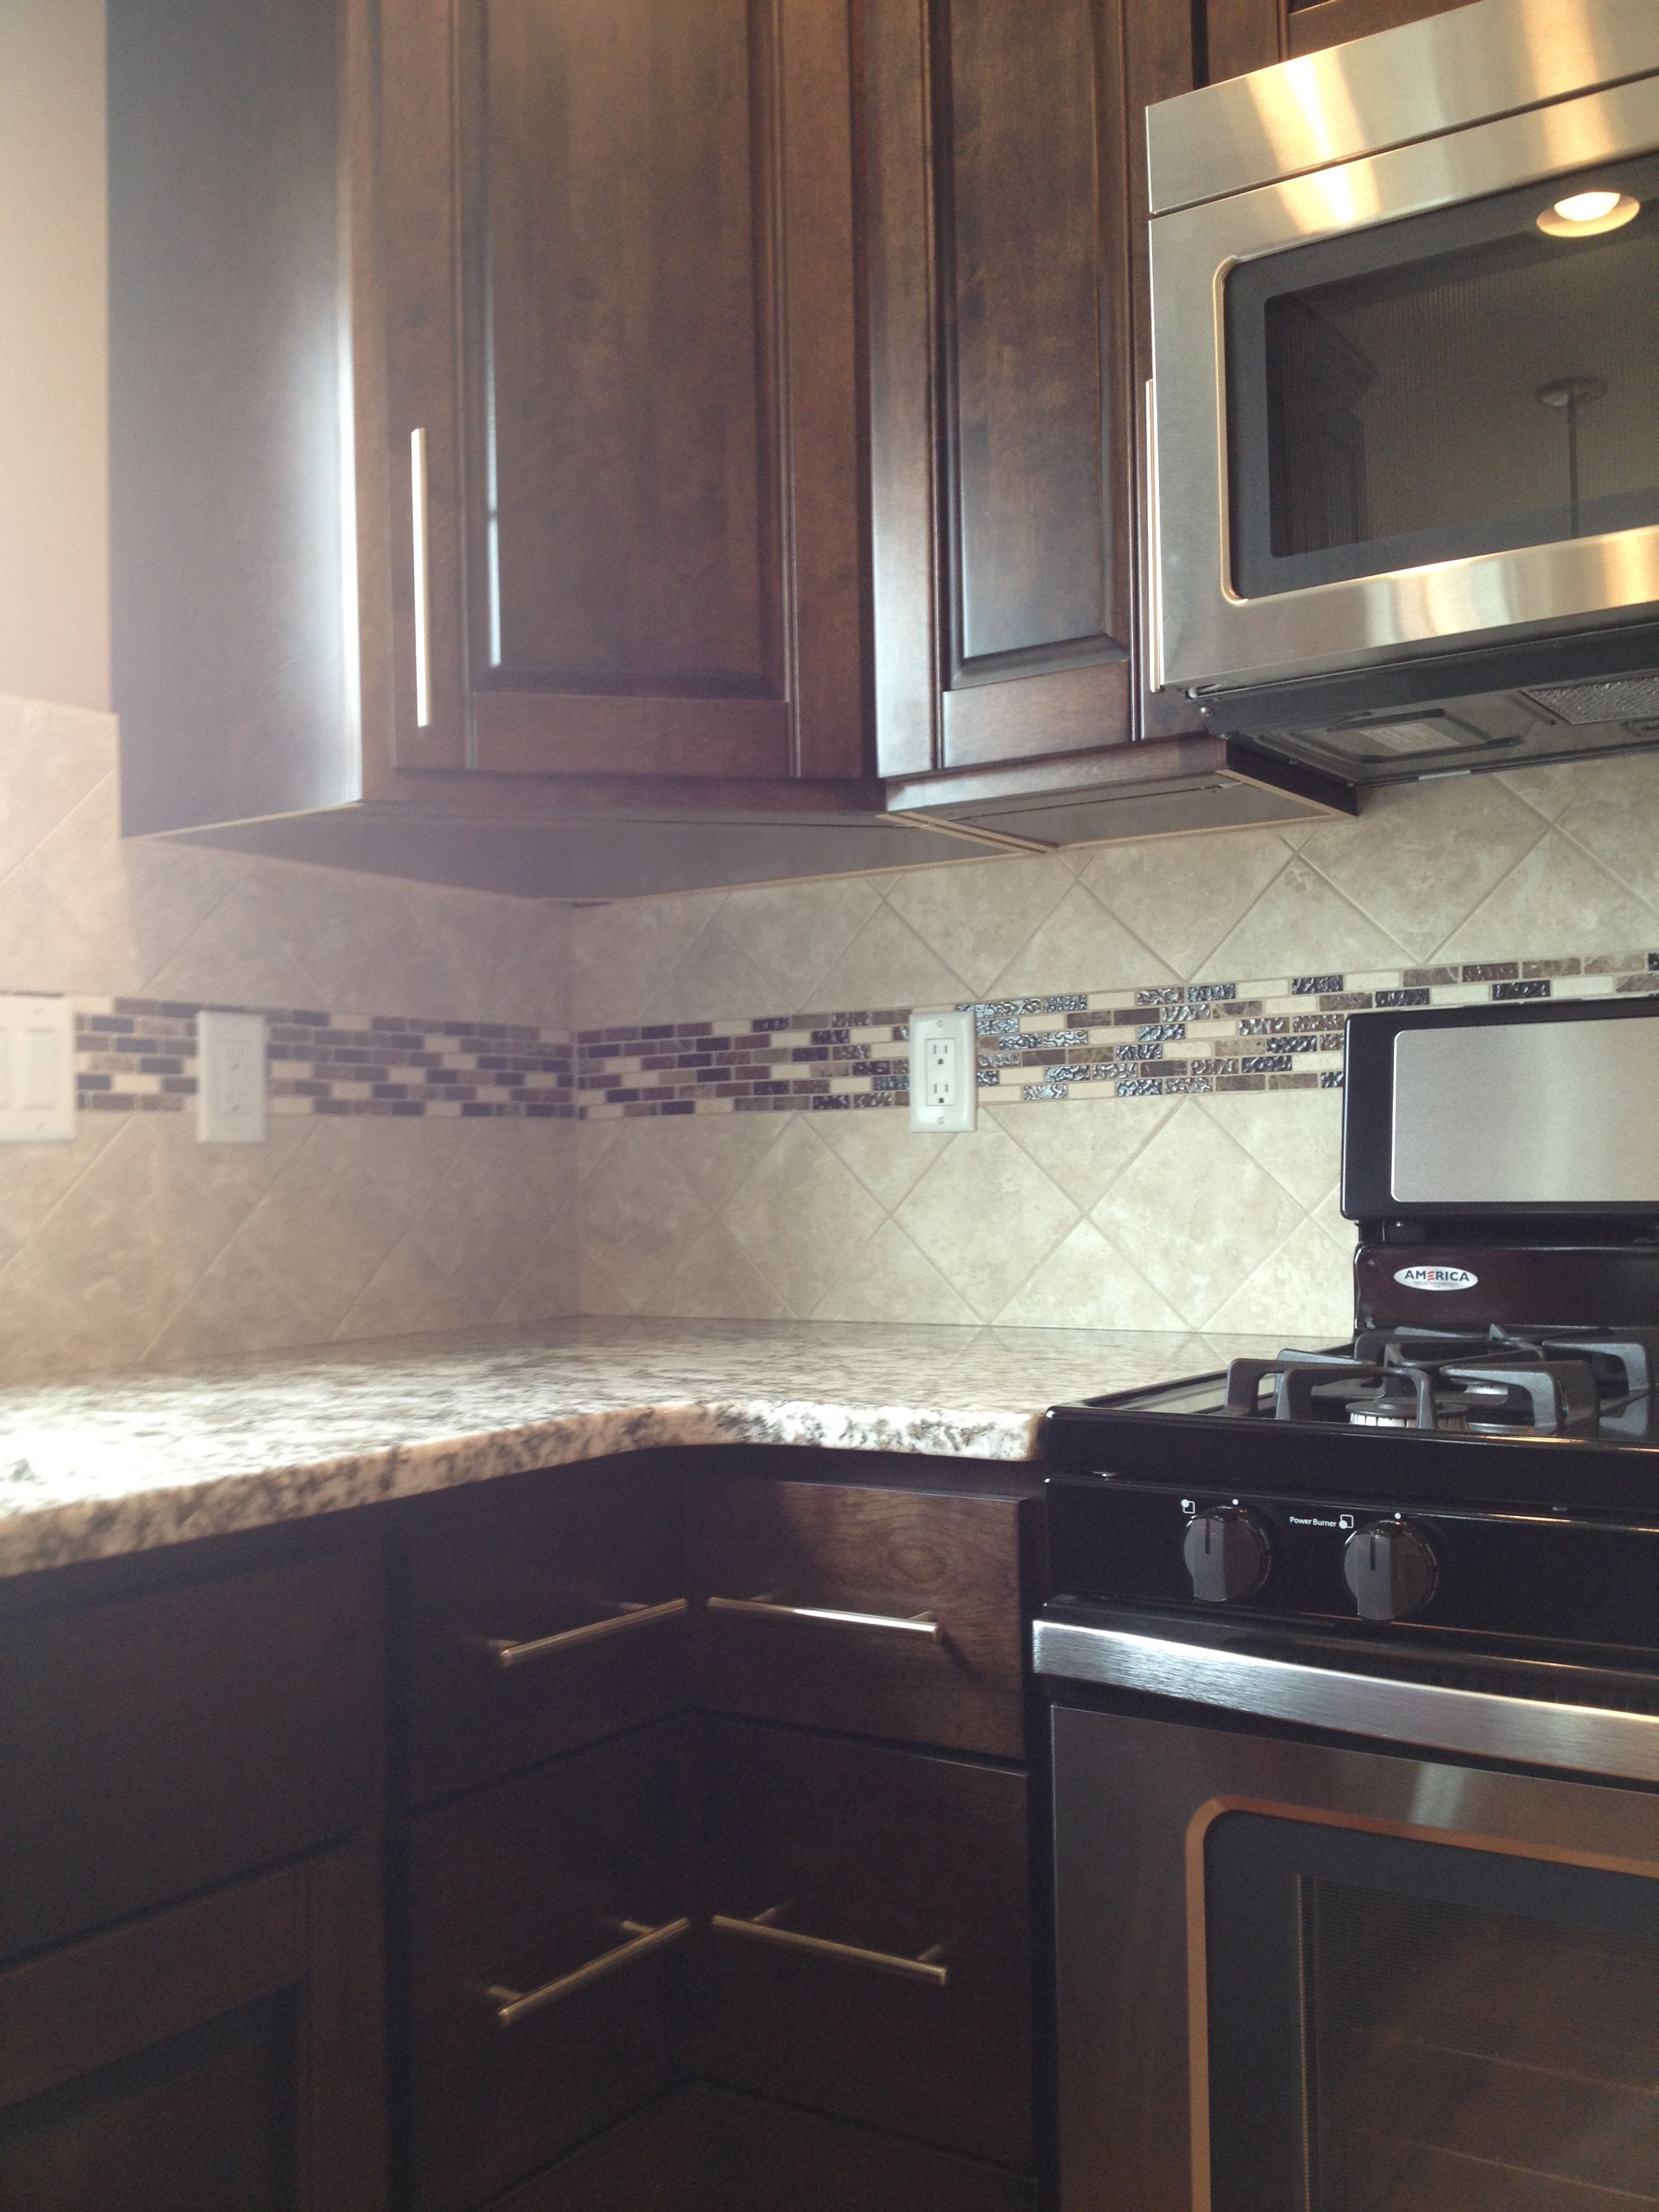 Backsplash Accent Ideas Kitchen Backsplash With Accent Strip Design By Dennis